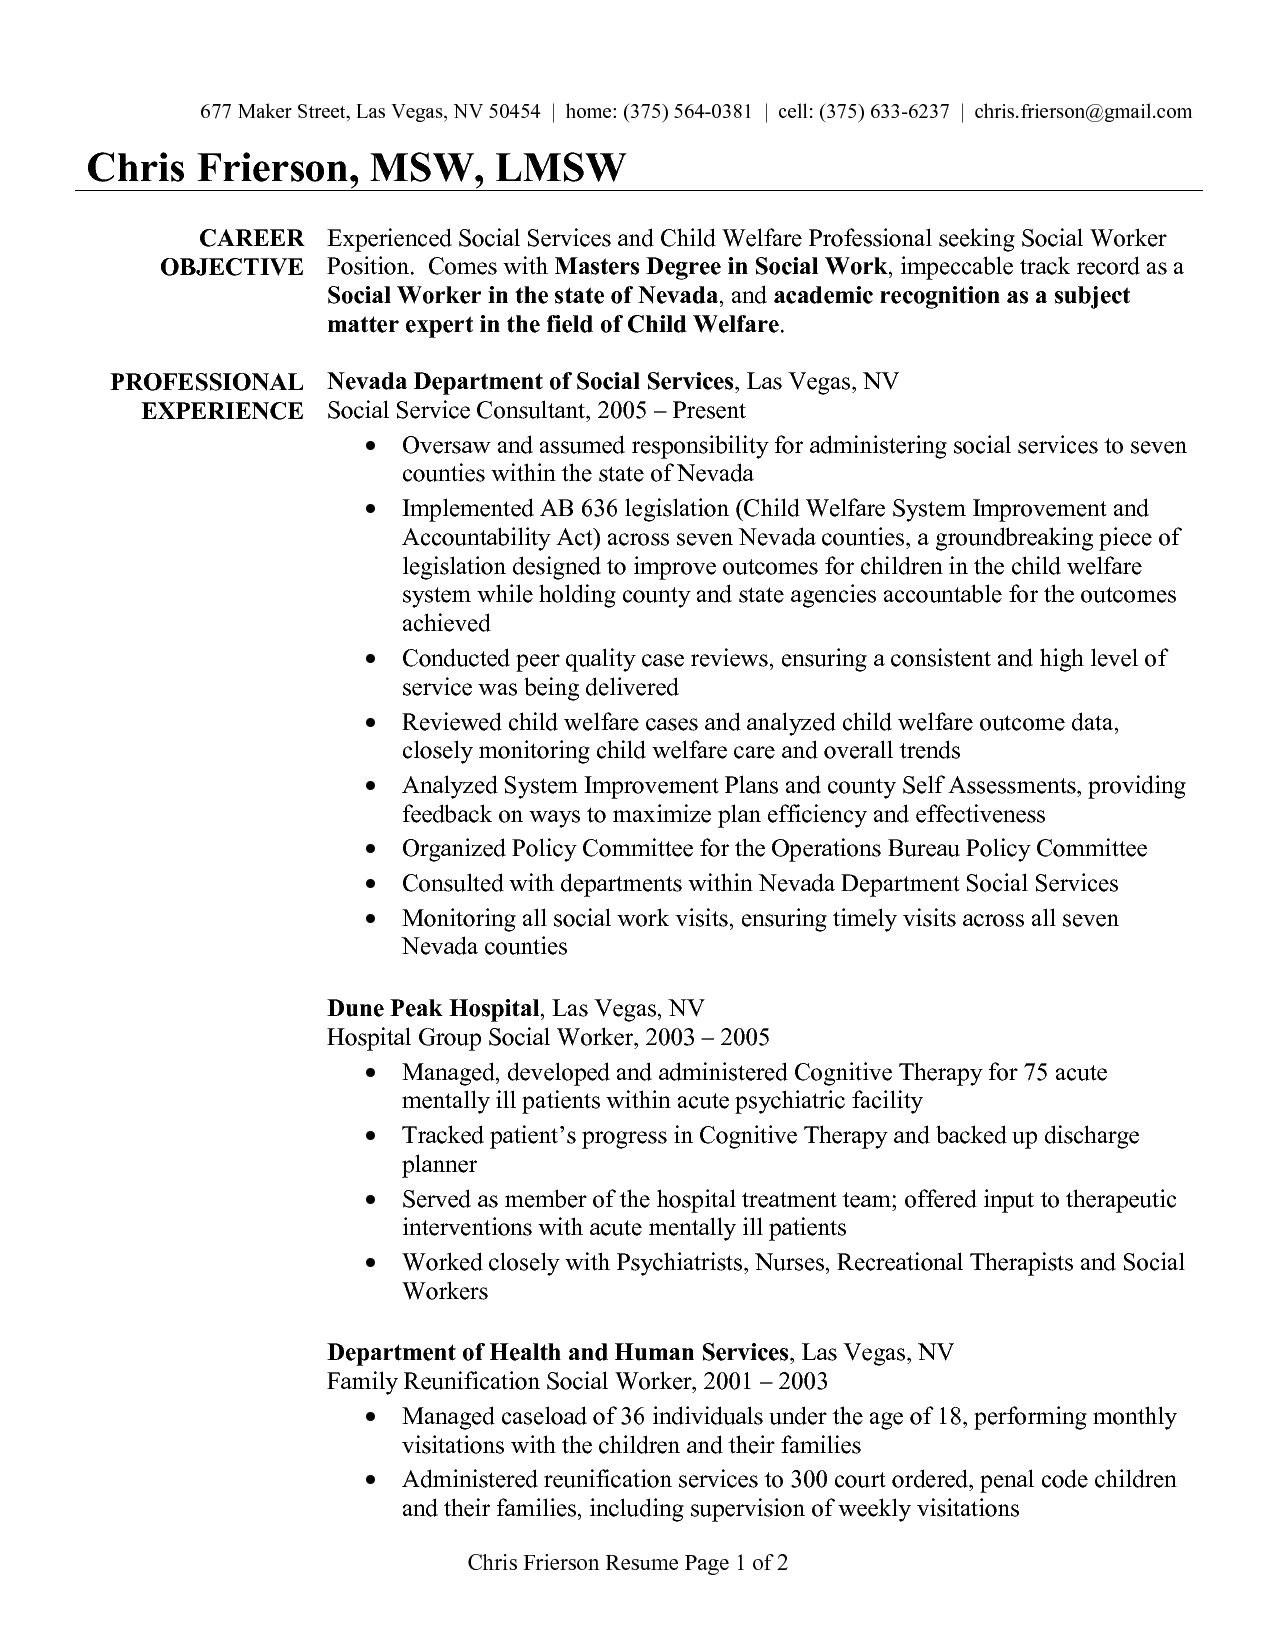 Social Work Resume Sample Social Work Resume Examples  Social Worker Resume Sample